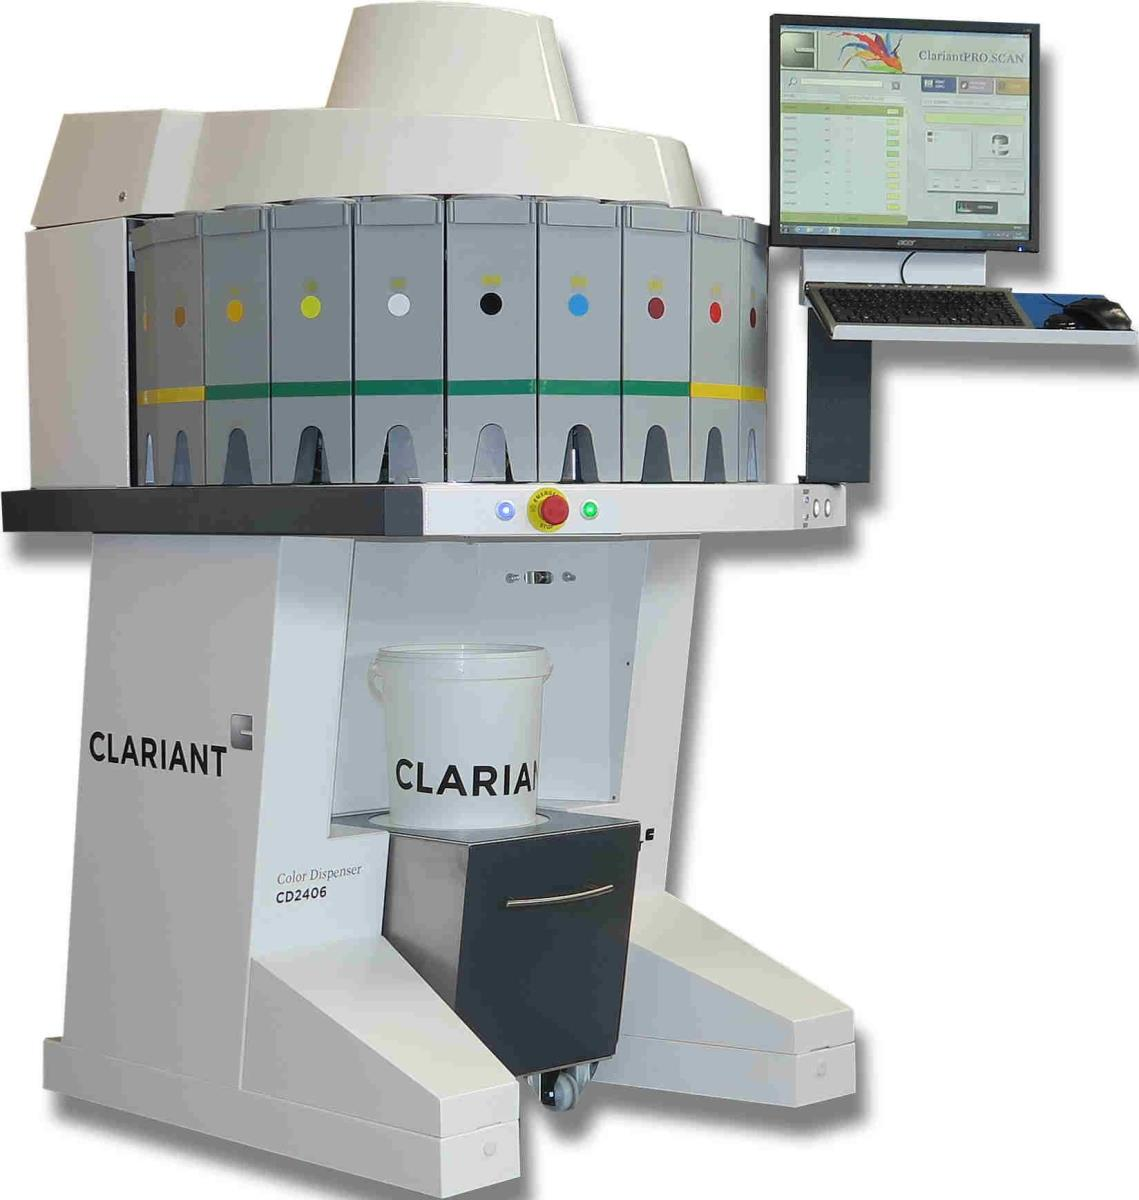 Sales Of Chemicals Contact Eu Federation Email Mail: Clariant Launches New 24-canister Dispenser Machine CD2406